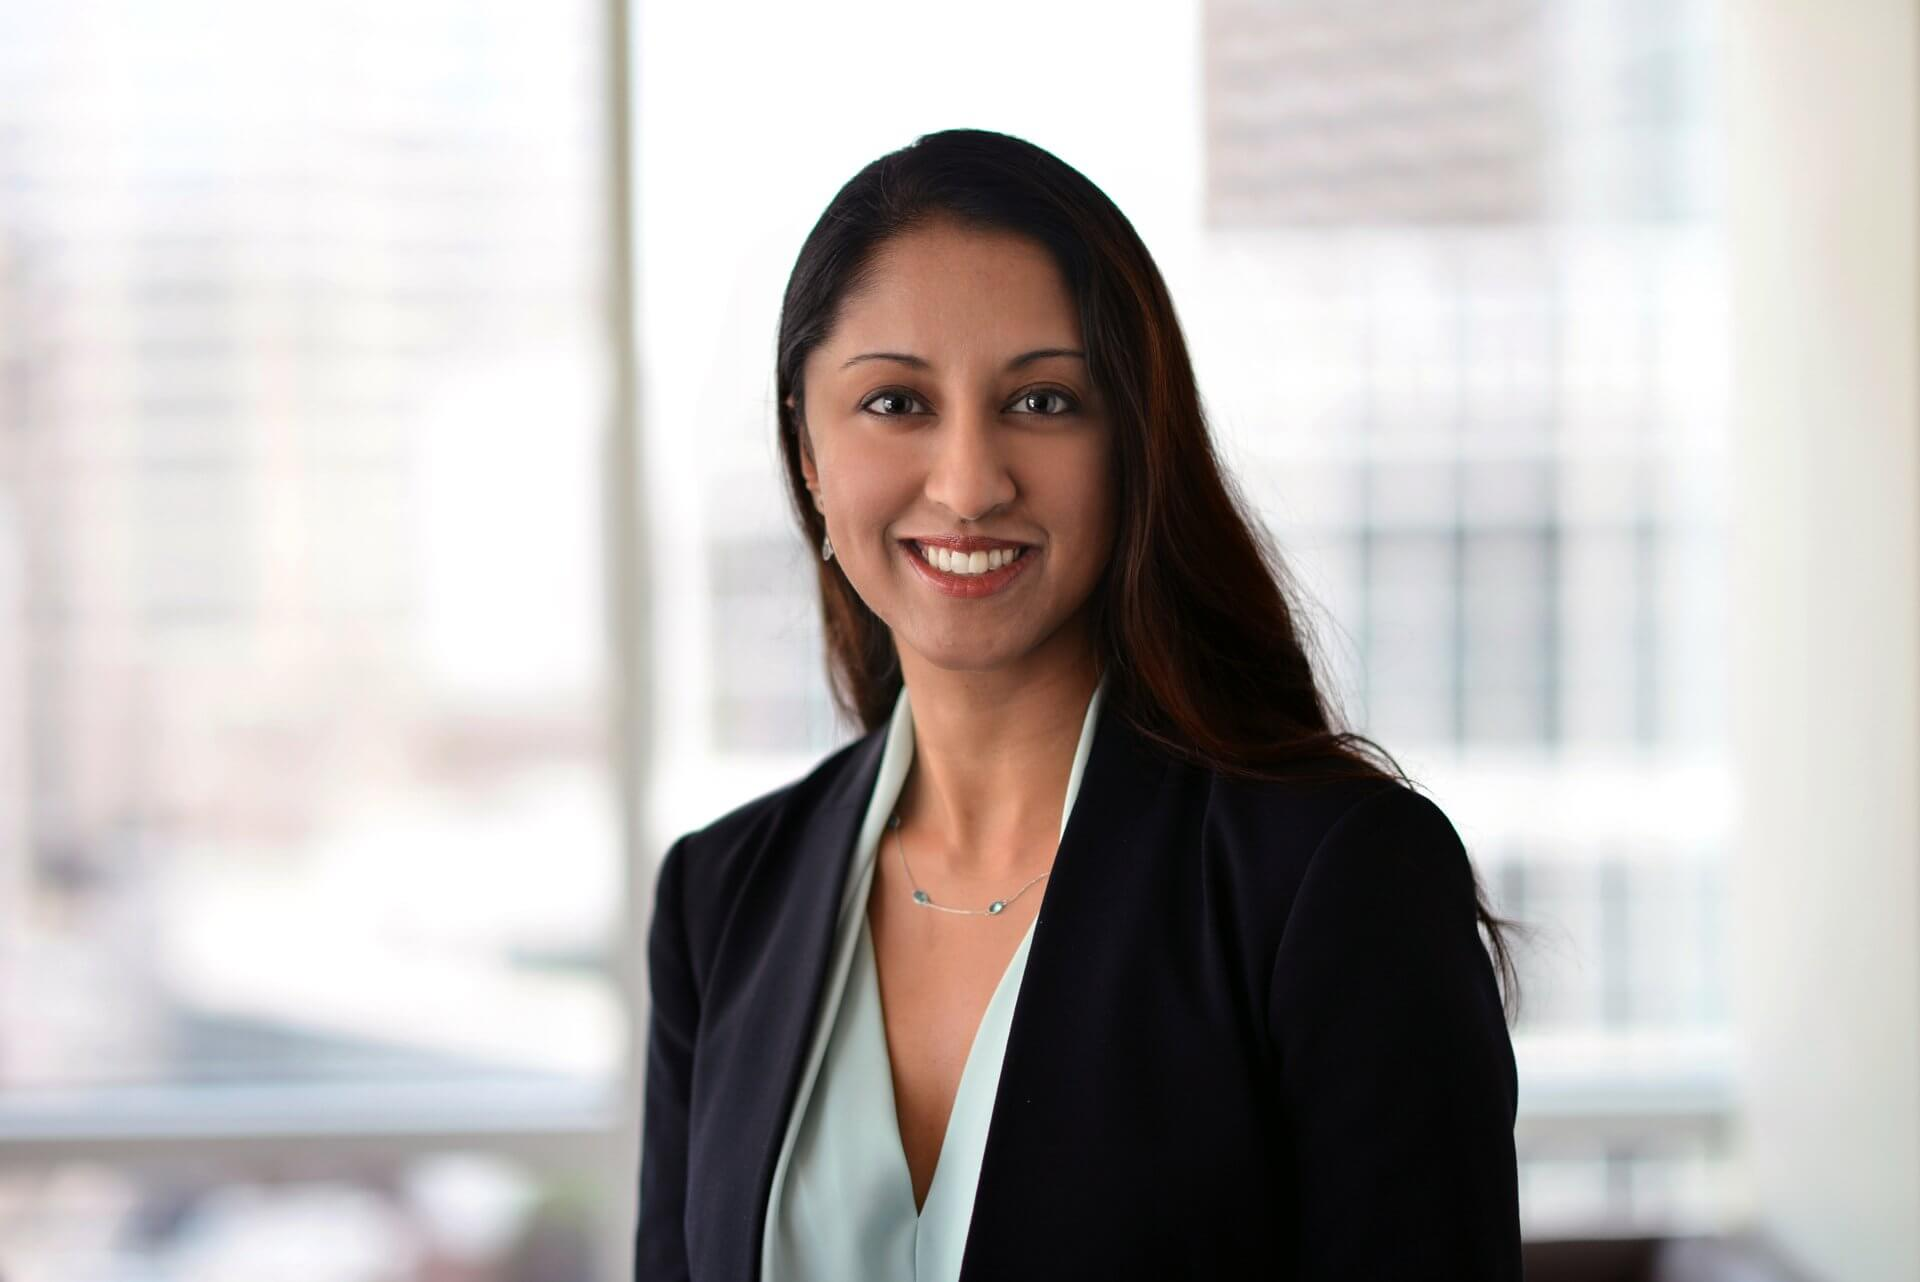 Dr. Sharmila Anandasabapathy, professor of medicine and gastroenterology at Baylor College of Medicine and director of Baylor Global Initiatives and the Baylor Global Innovation Center. (Credit: Baylor College of Medicine)